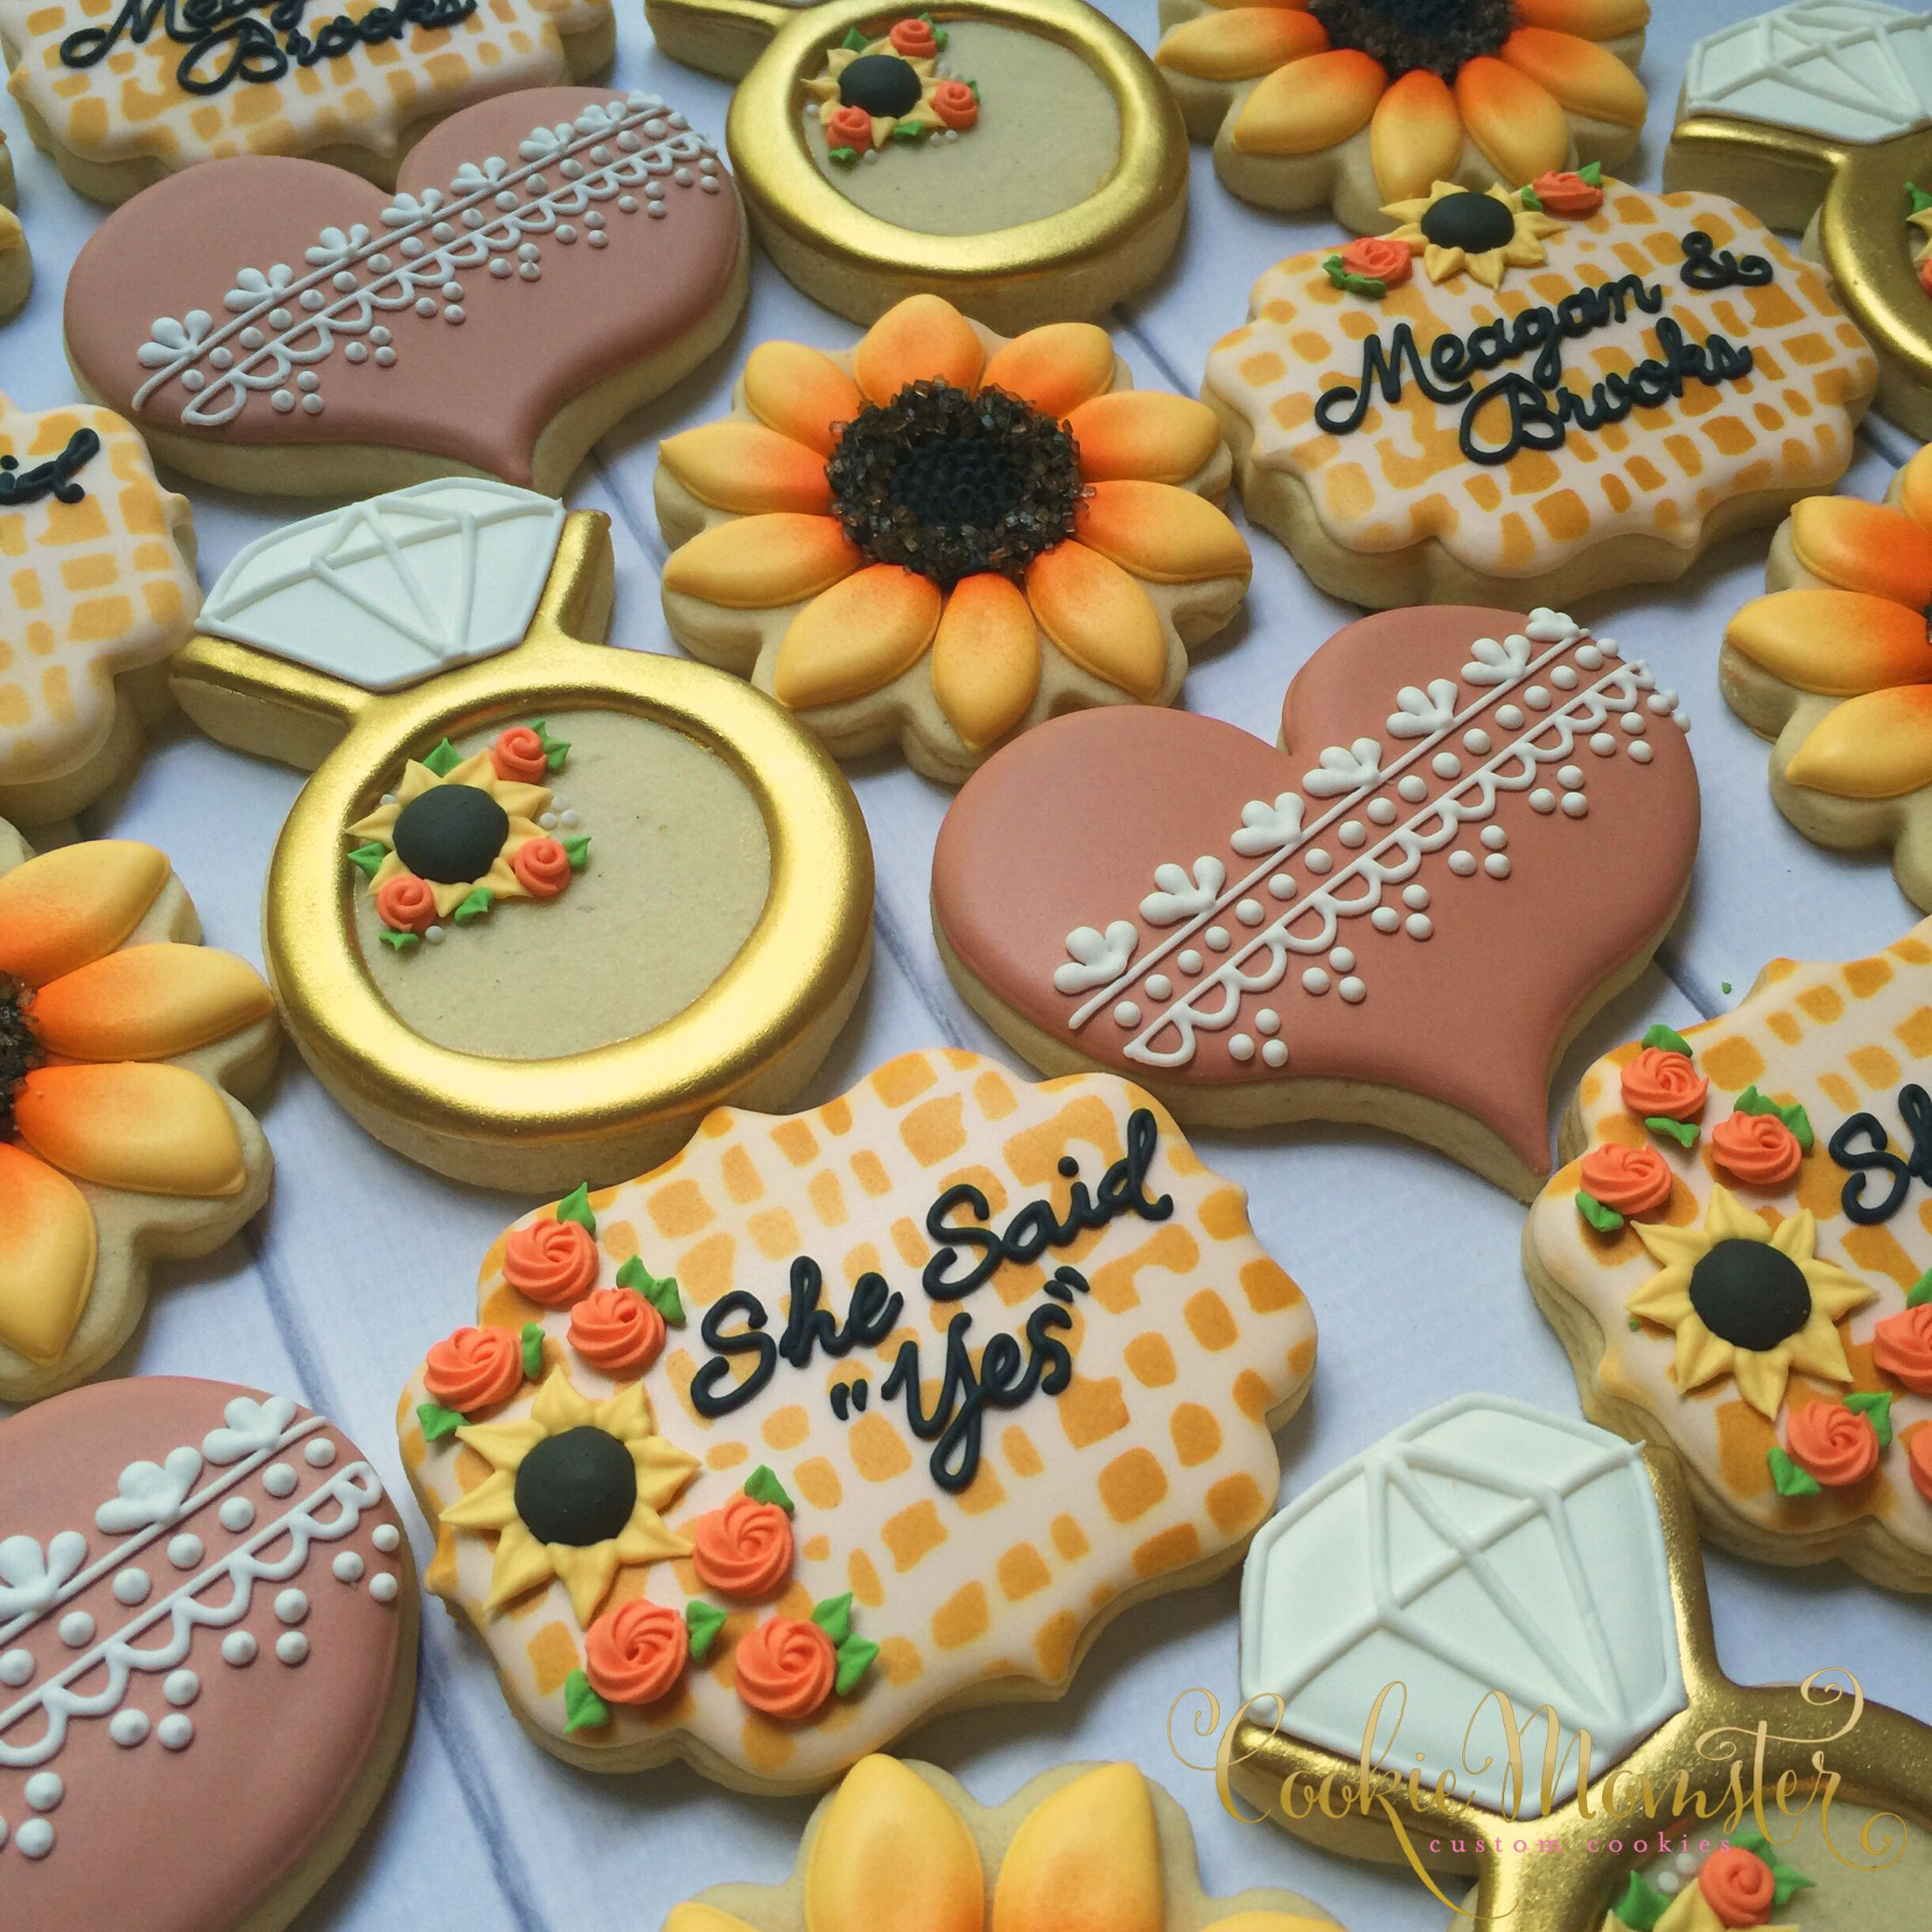 Cookie Momster by Hilary Sunflower Bridal Cookies Cookies